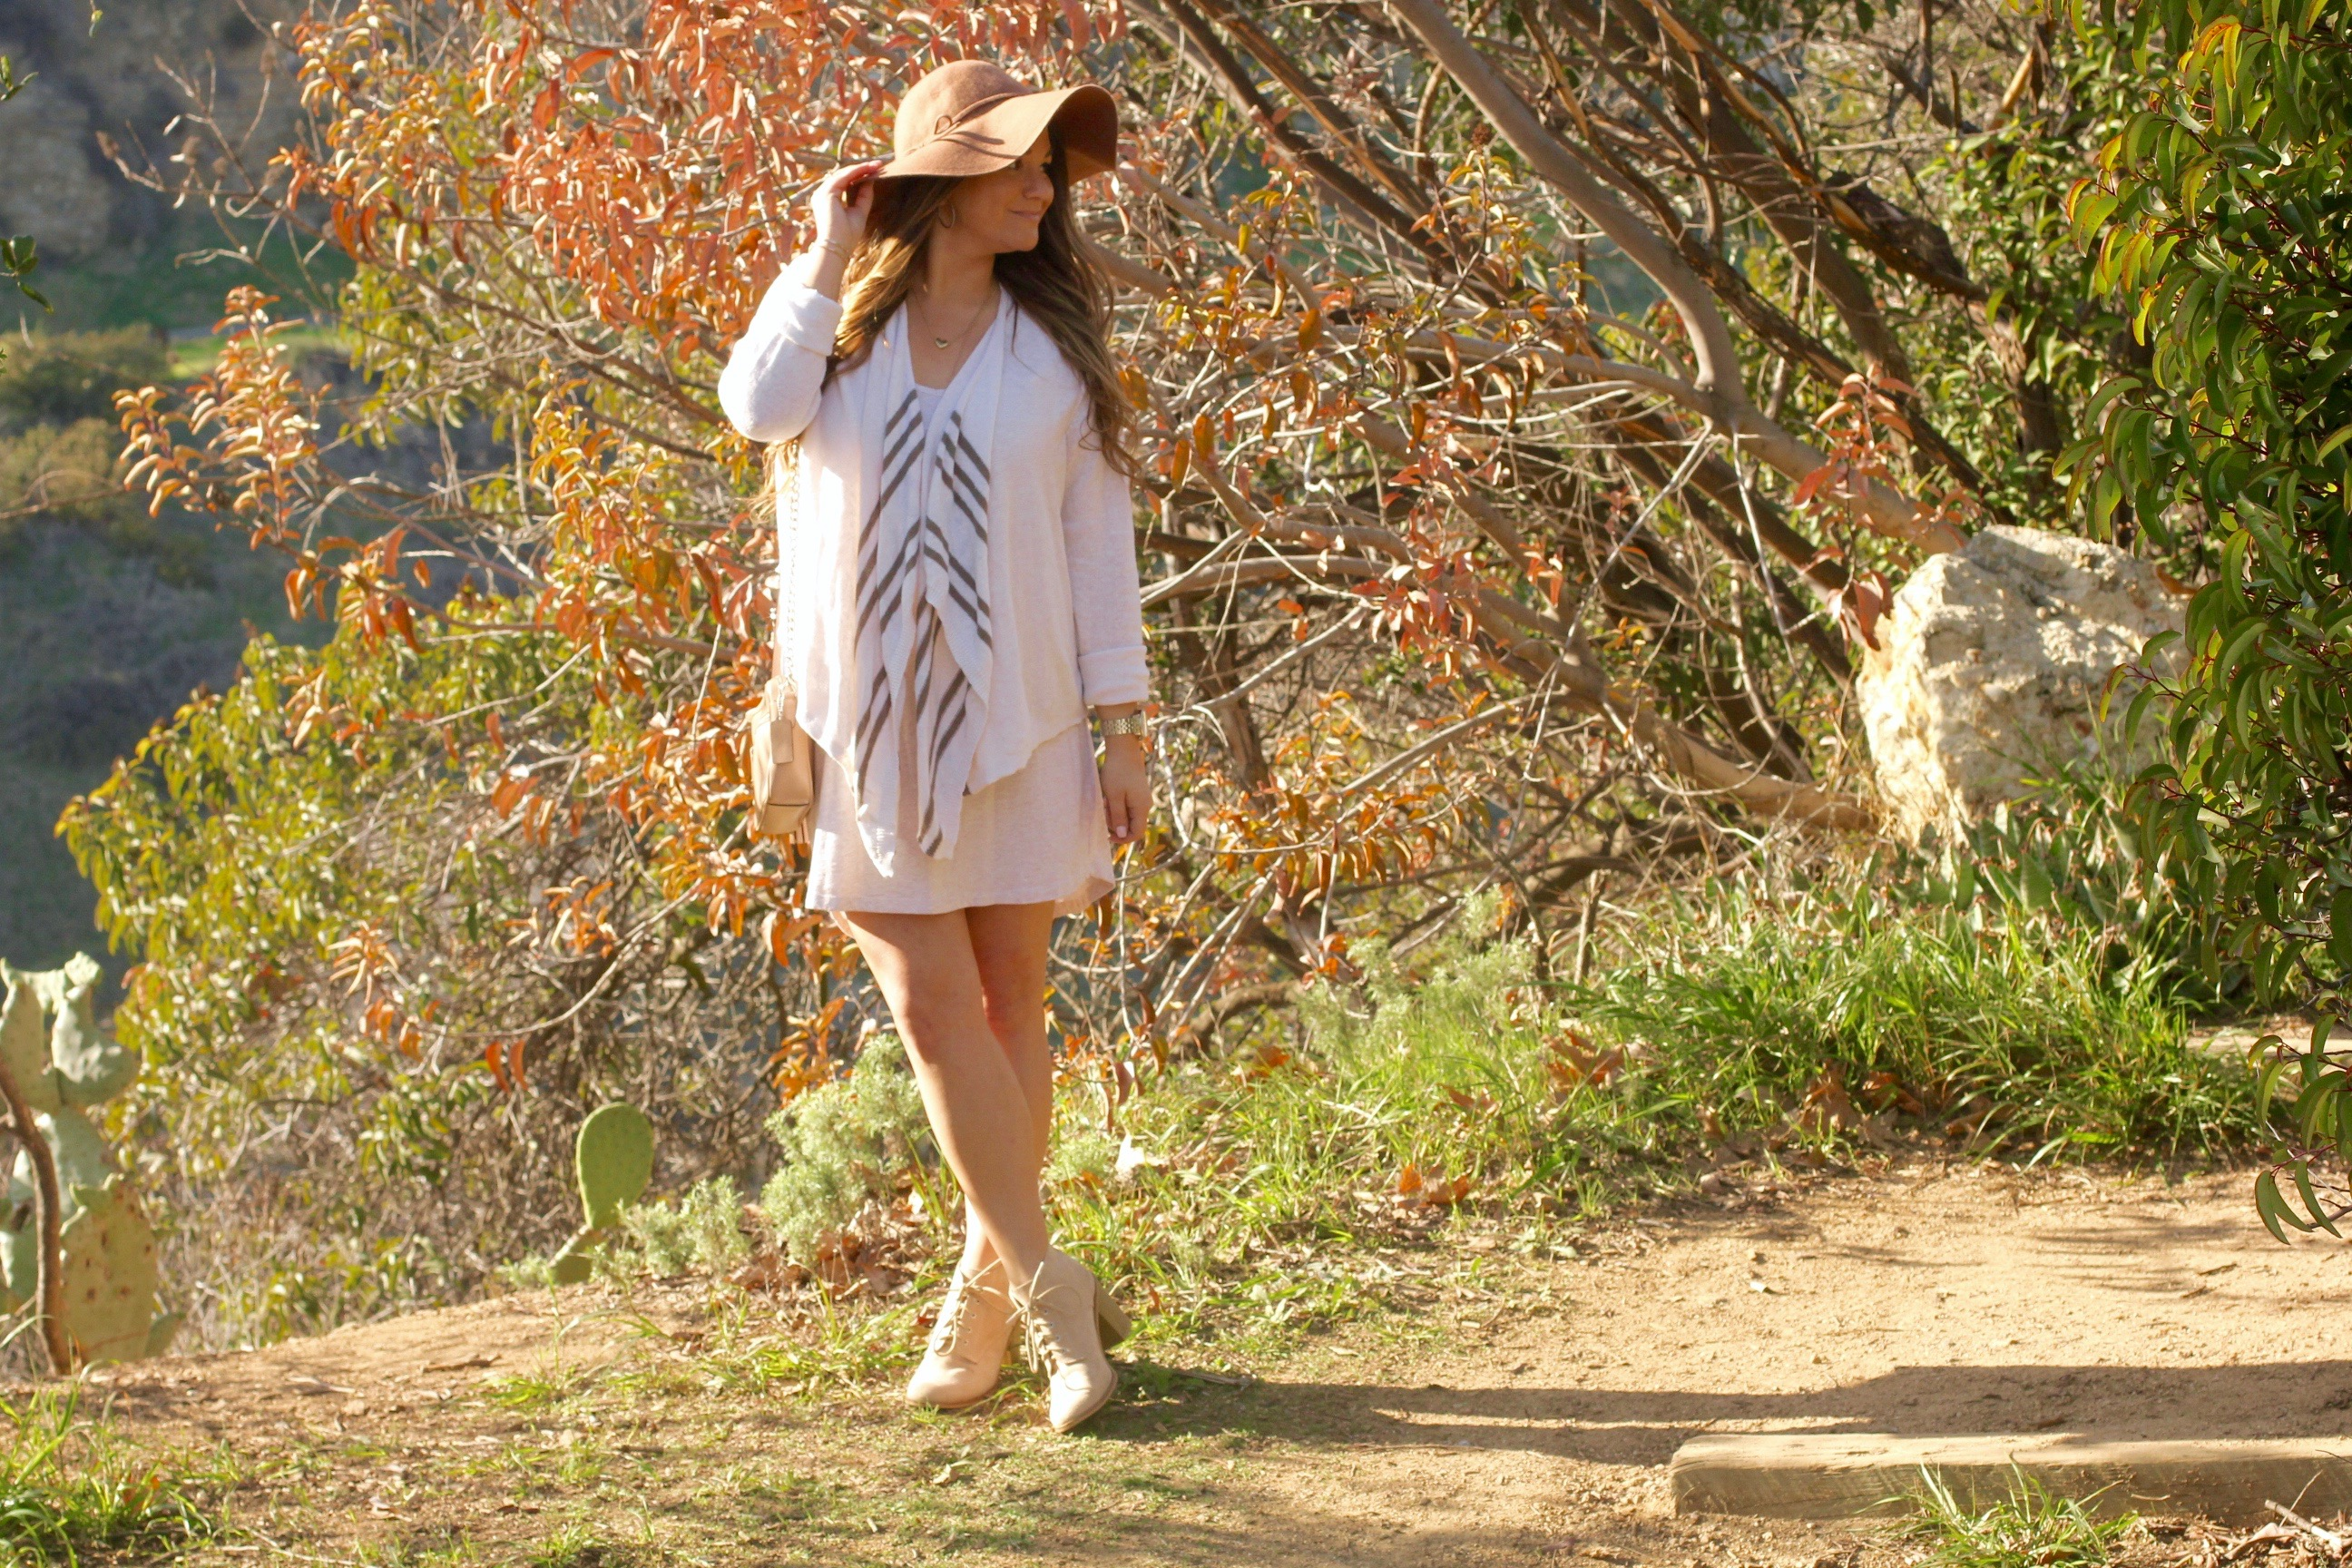 missyonmadison, melissa tierney, spring style, spring fashion, spring trends, fashion blogger, la blogger, hollywood hills, tan floppy hat, target style, target floppy hat, old navy cardigan, beige open front cardigan, beige suede lace up ankle boots, beige suede booties, beige leather crossbody bag, coach crossbody bag, beige chain crossbody bag, threads for thought dress, threads for thought penny dress, beige cardigan,